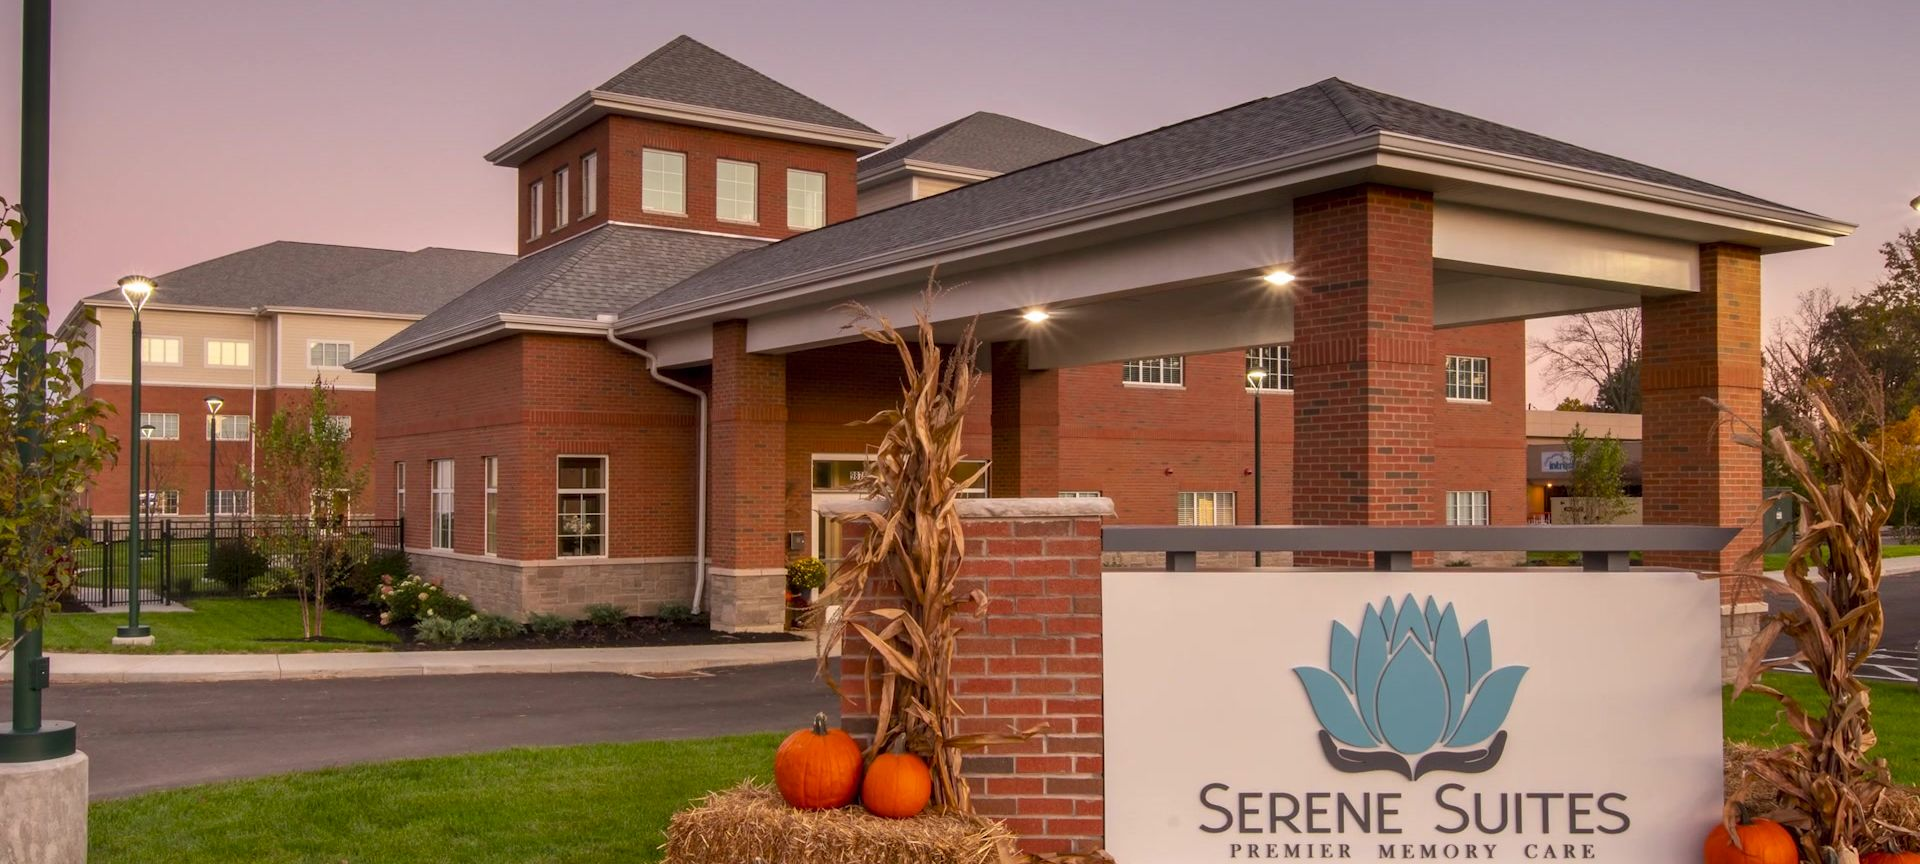 Partnering with Serene Suites